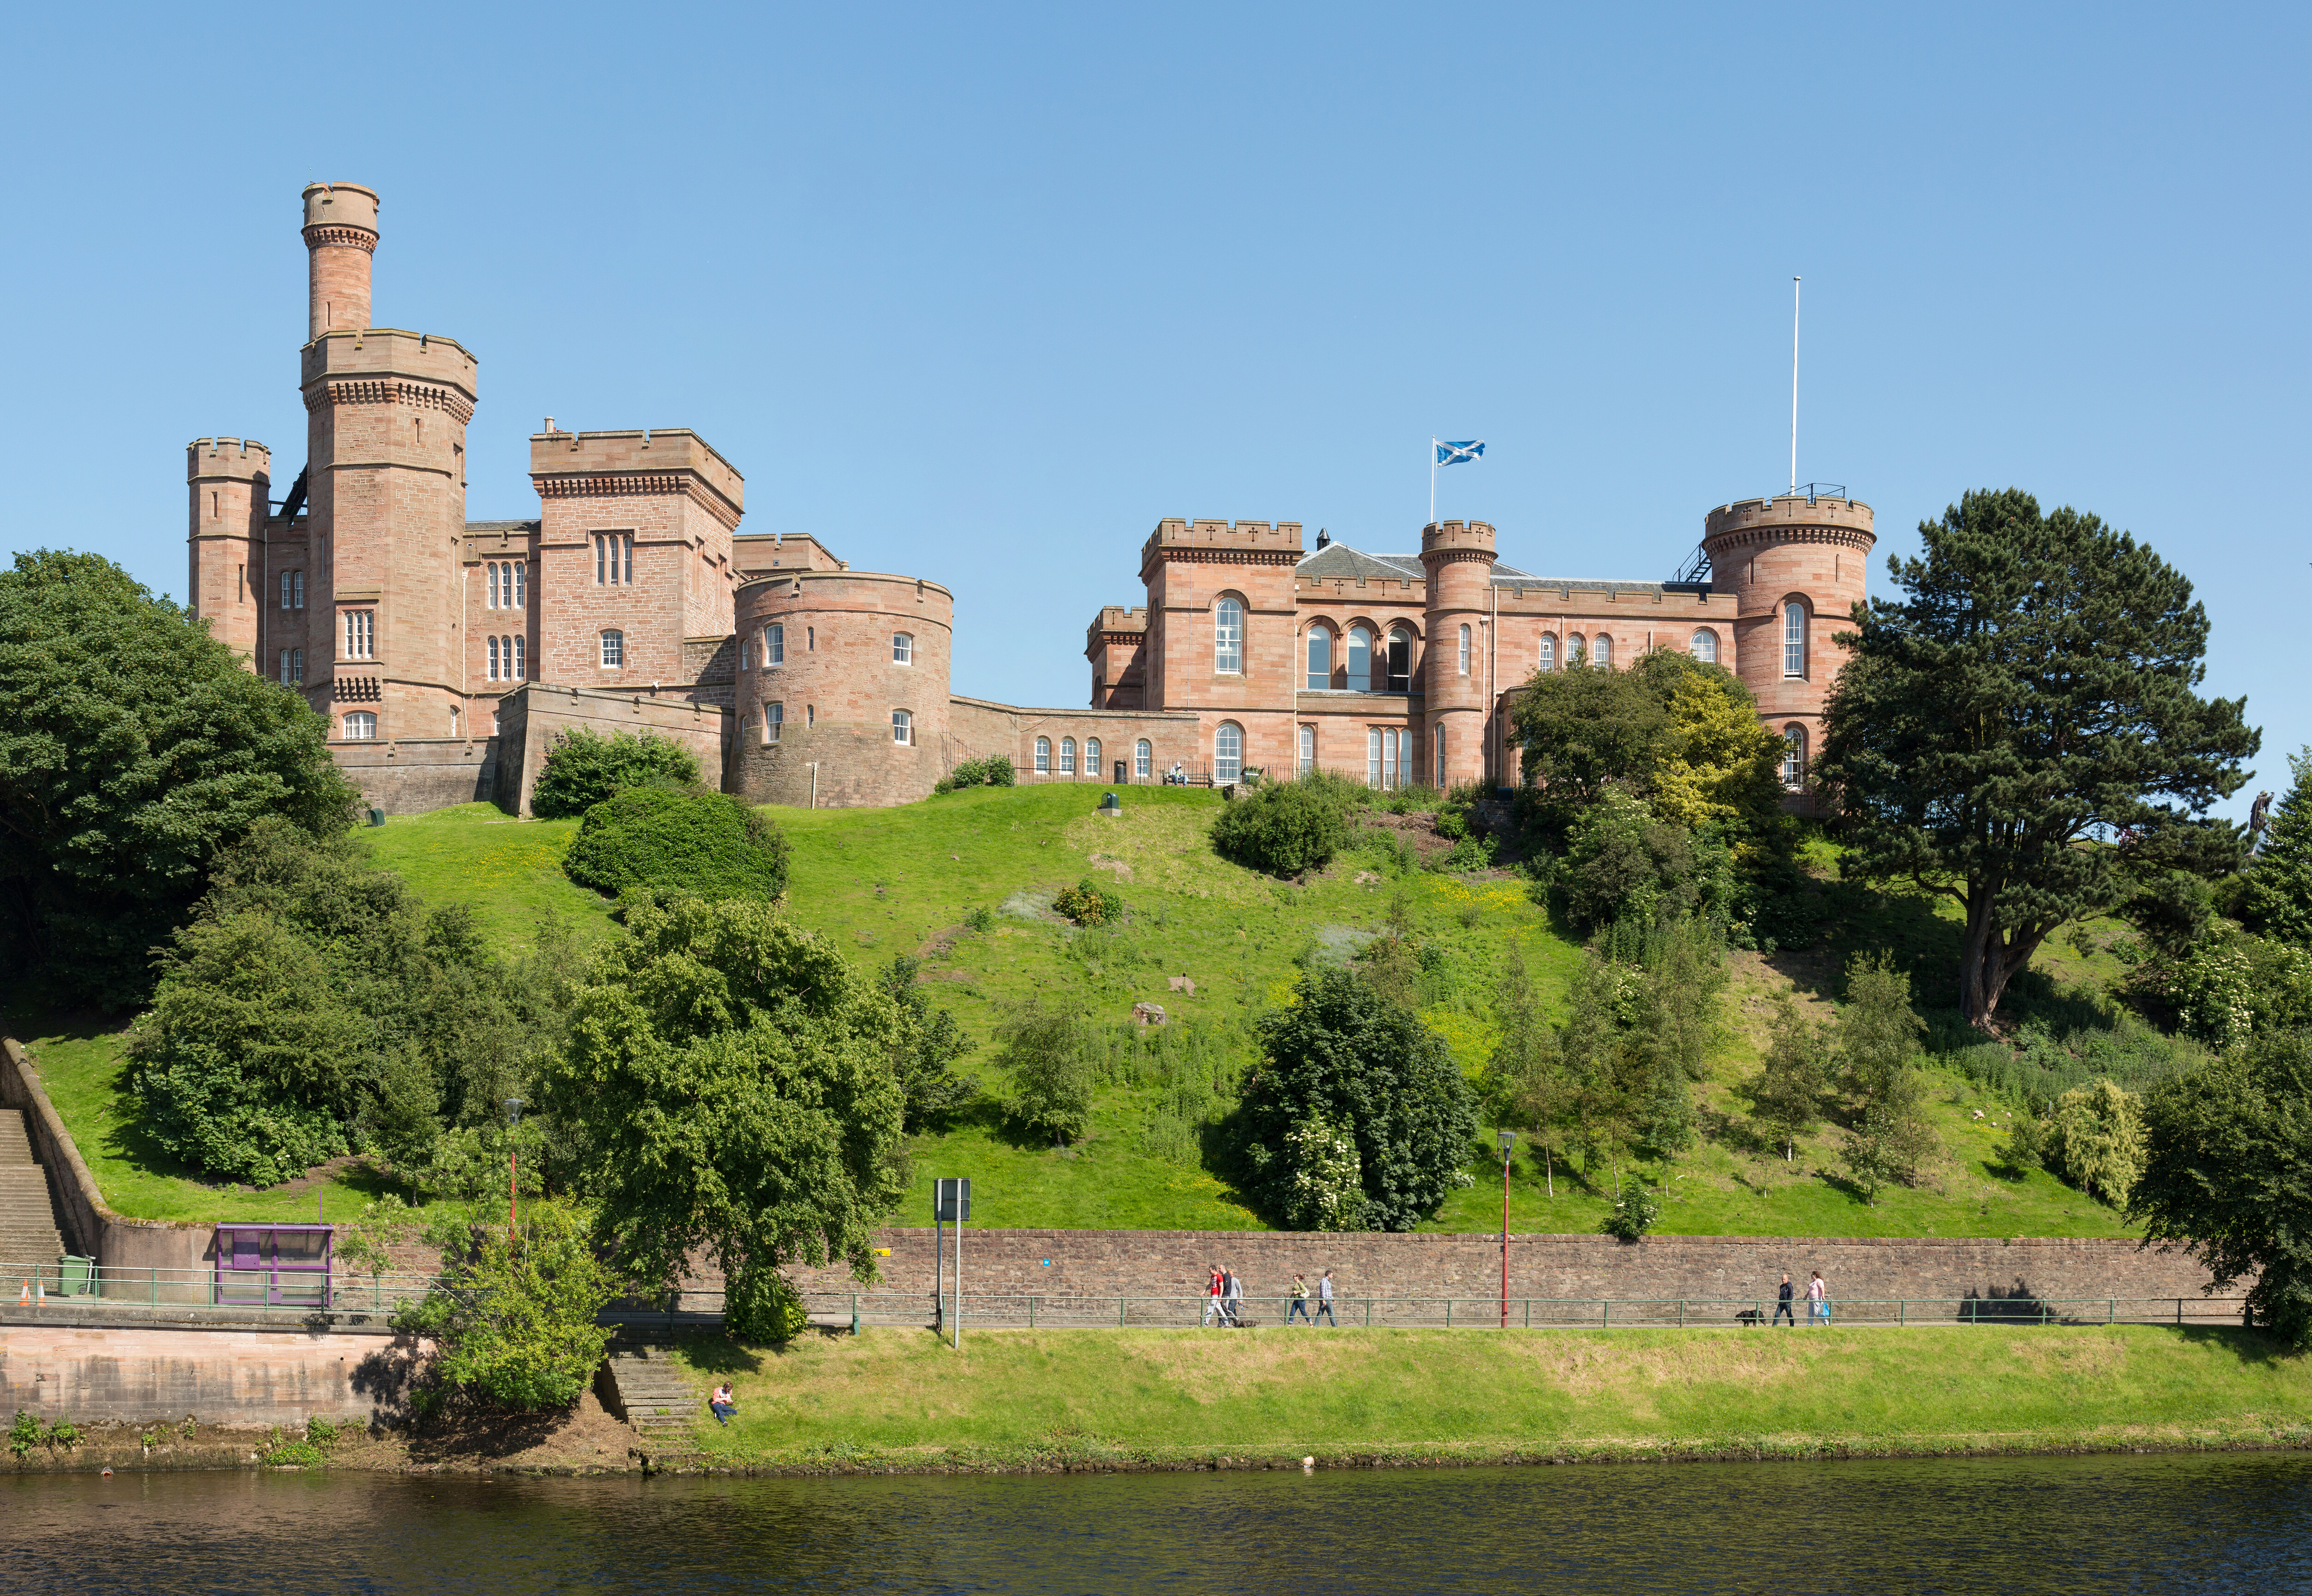 The 10 Closest Hotels to River Ness, Inverness - TripAdvisor